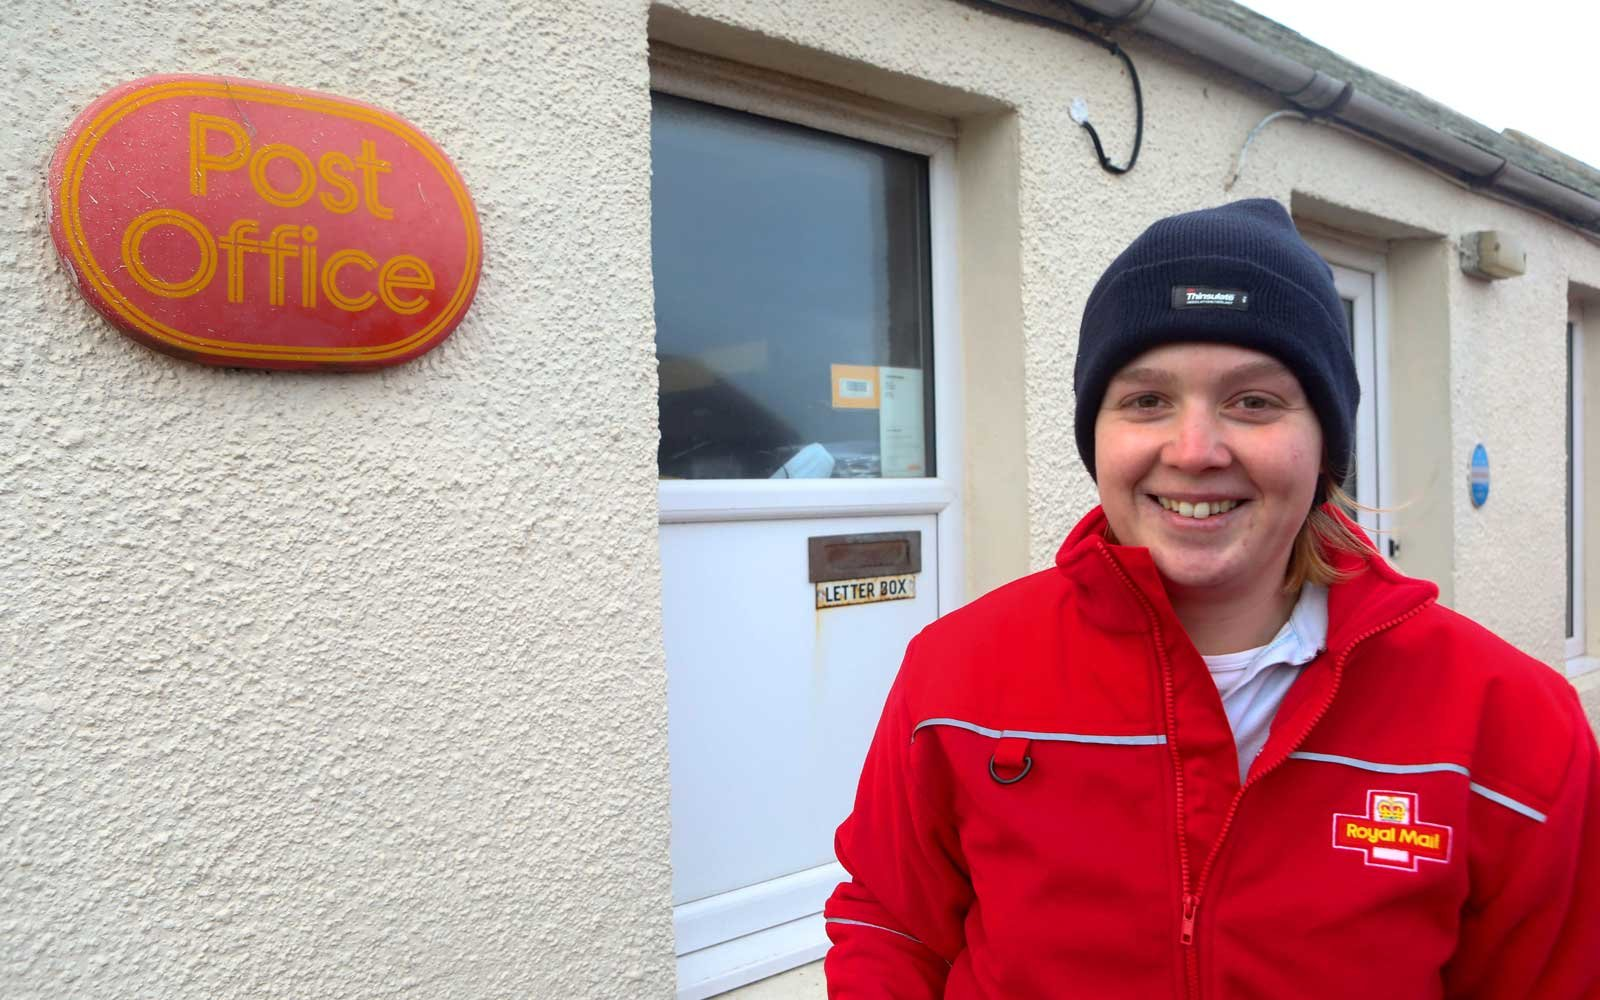 Sarah Moore, 26 from the Scottish island of the Orkneys works as a postwoman